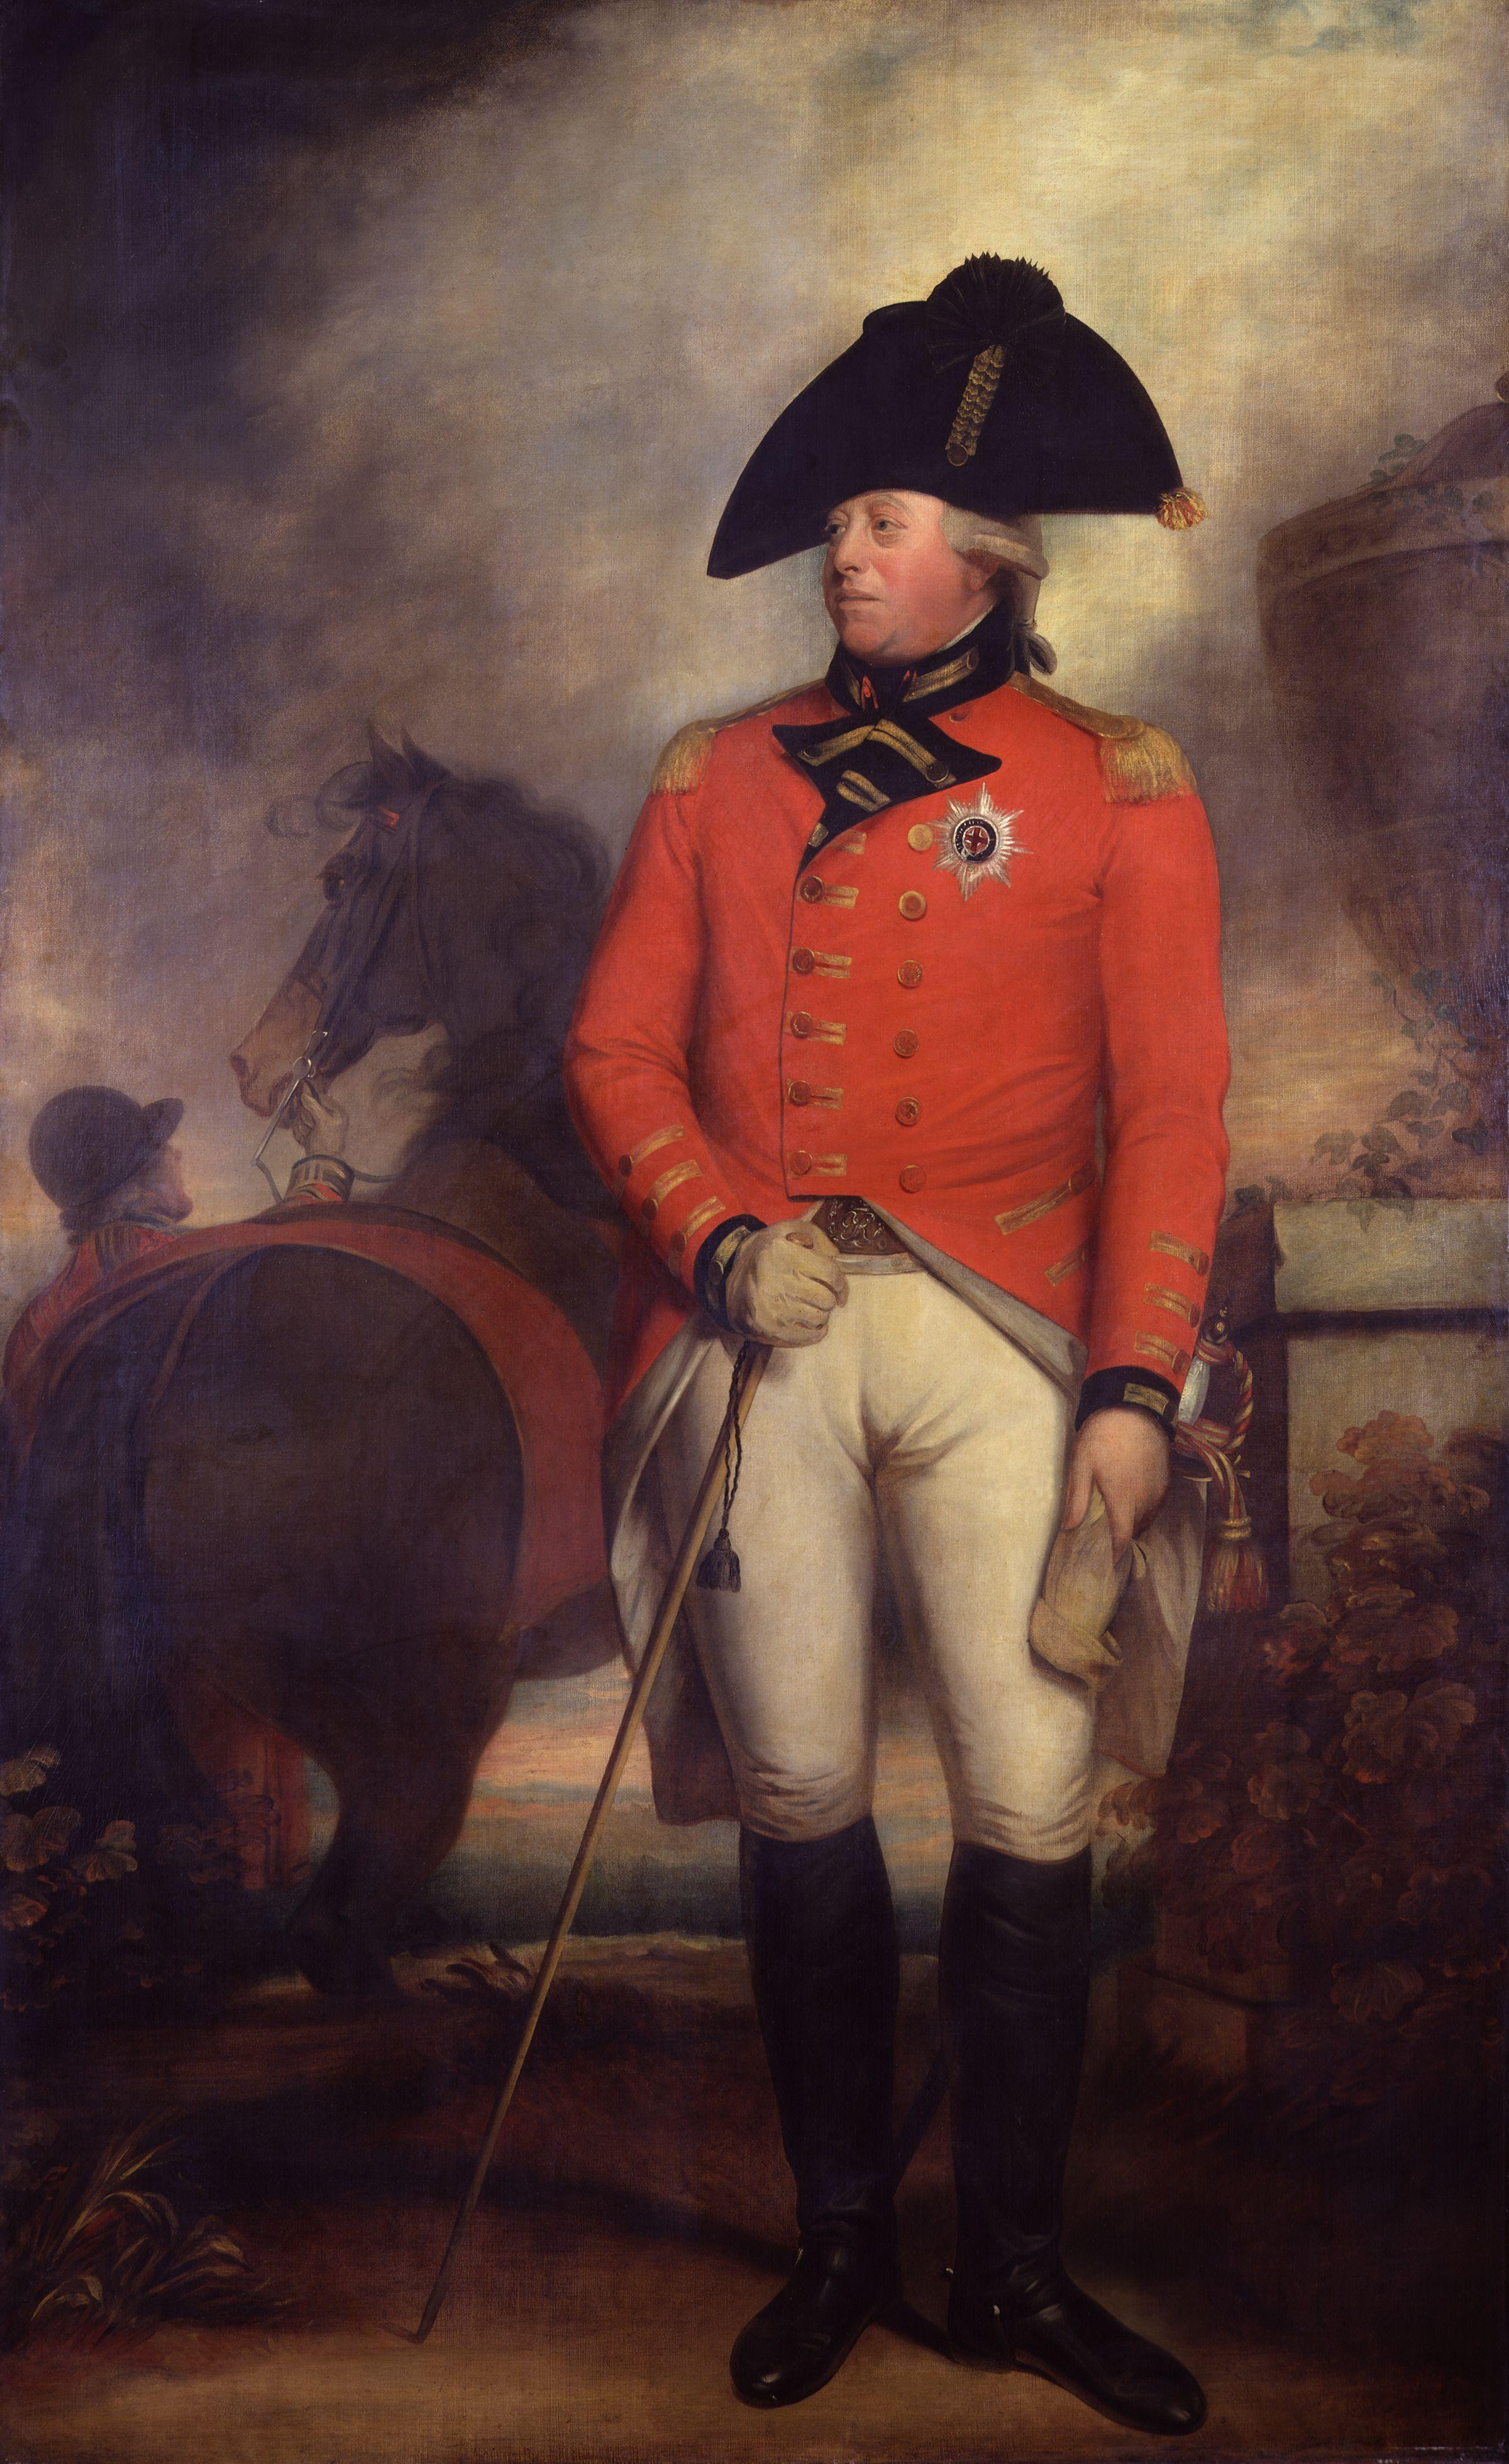 Sir William Beechey: His Britannic Majesty King George III